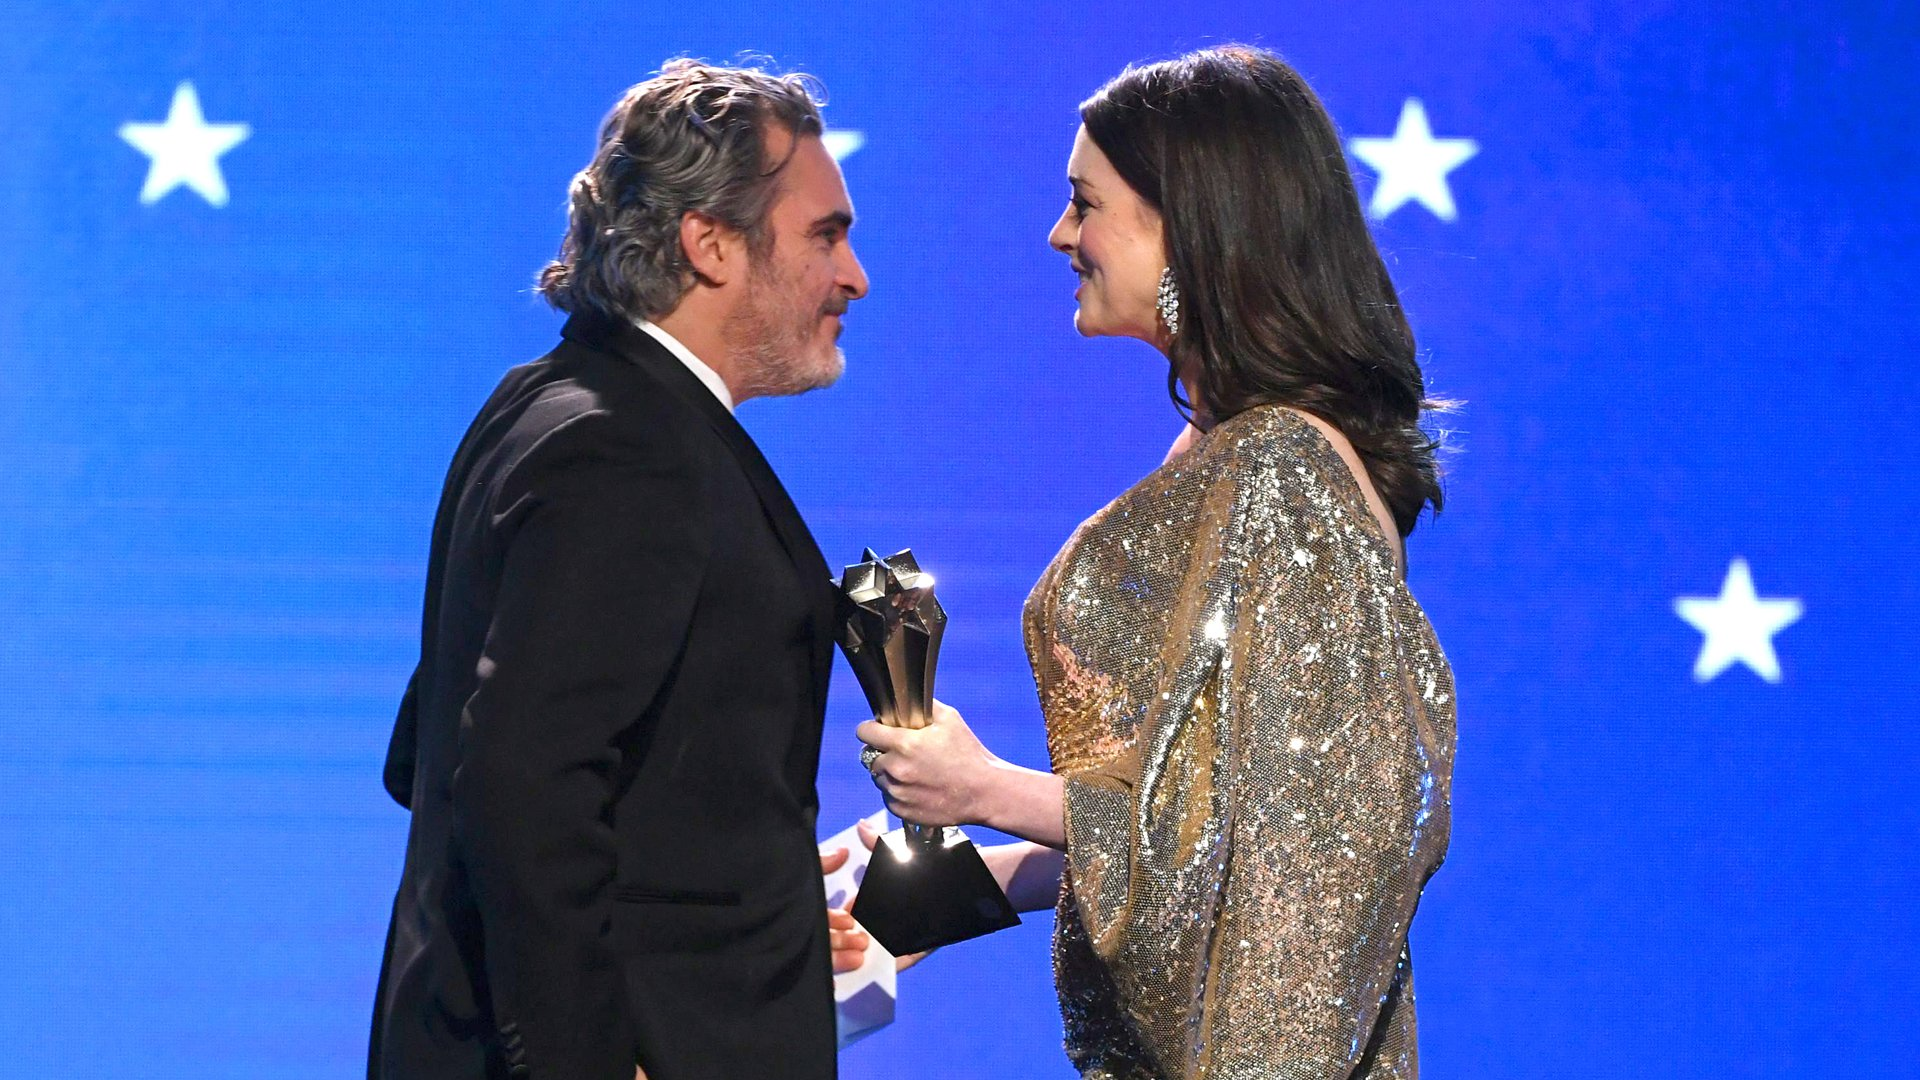 Joaquin Phoenix accepts the Best Actor award for 'Joker' from Anne Hathaway onstage during the 25th Annual Critics' Choice Awards at Barker Hangar on January 12, 2020 in Santa Monica, California. (Credit: Kevin Winter/Getty Images for Critics Choice Association)